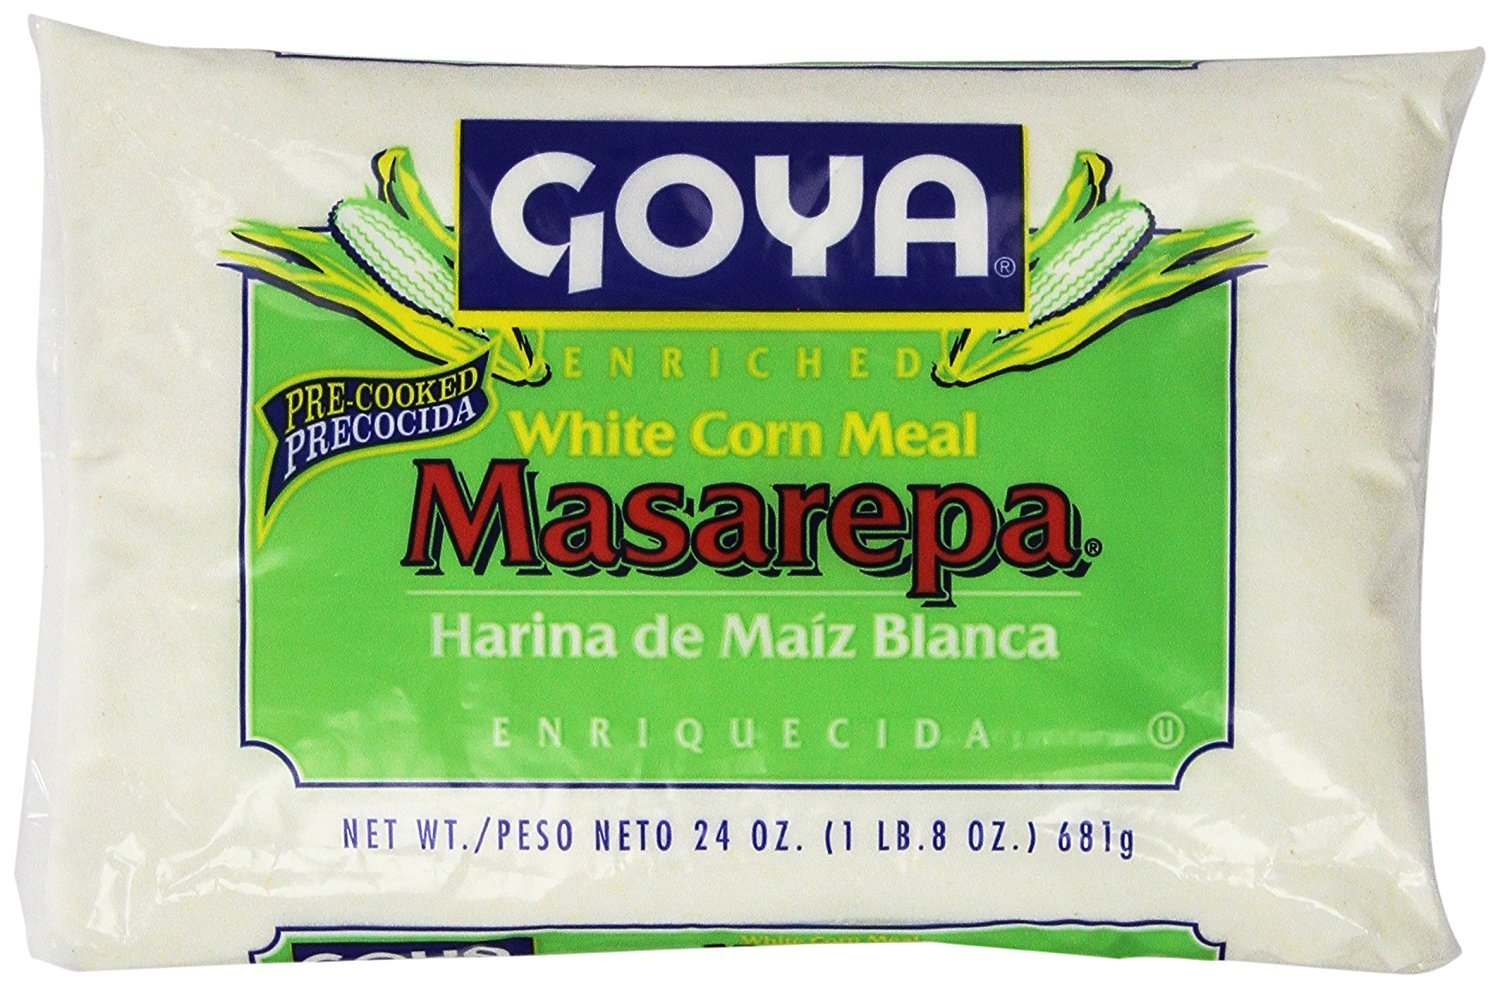 Goya White Corn Meal Masarepa 24 Oz (PACK OF 01)